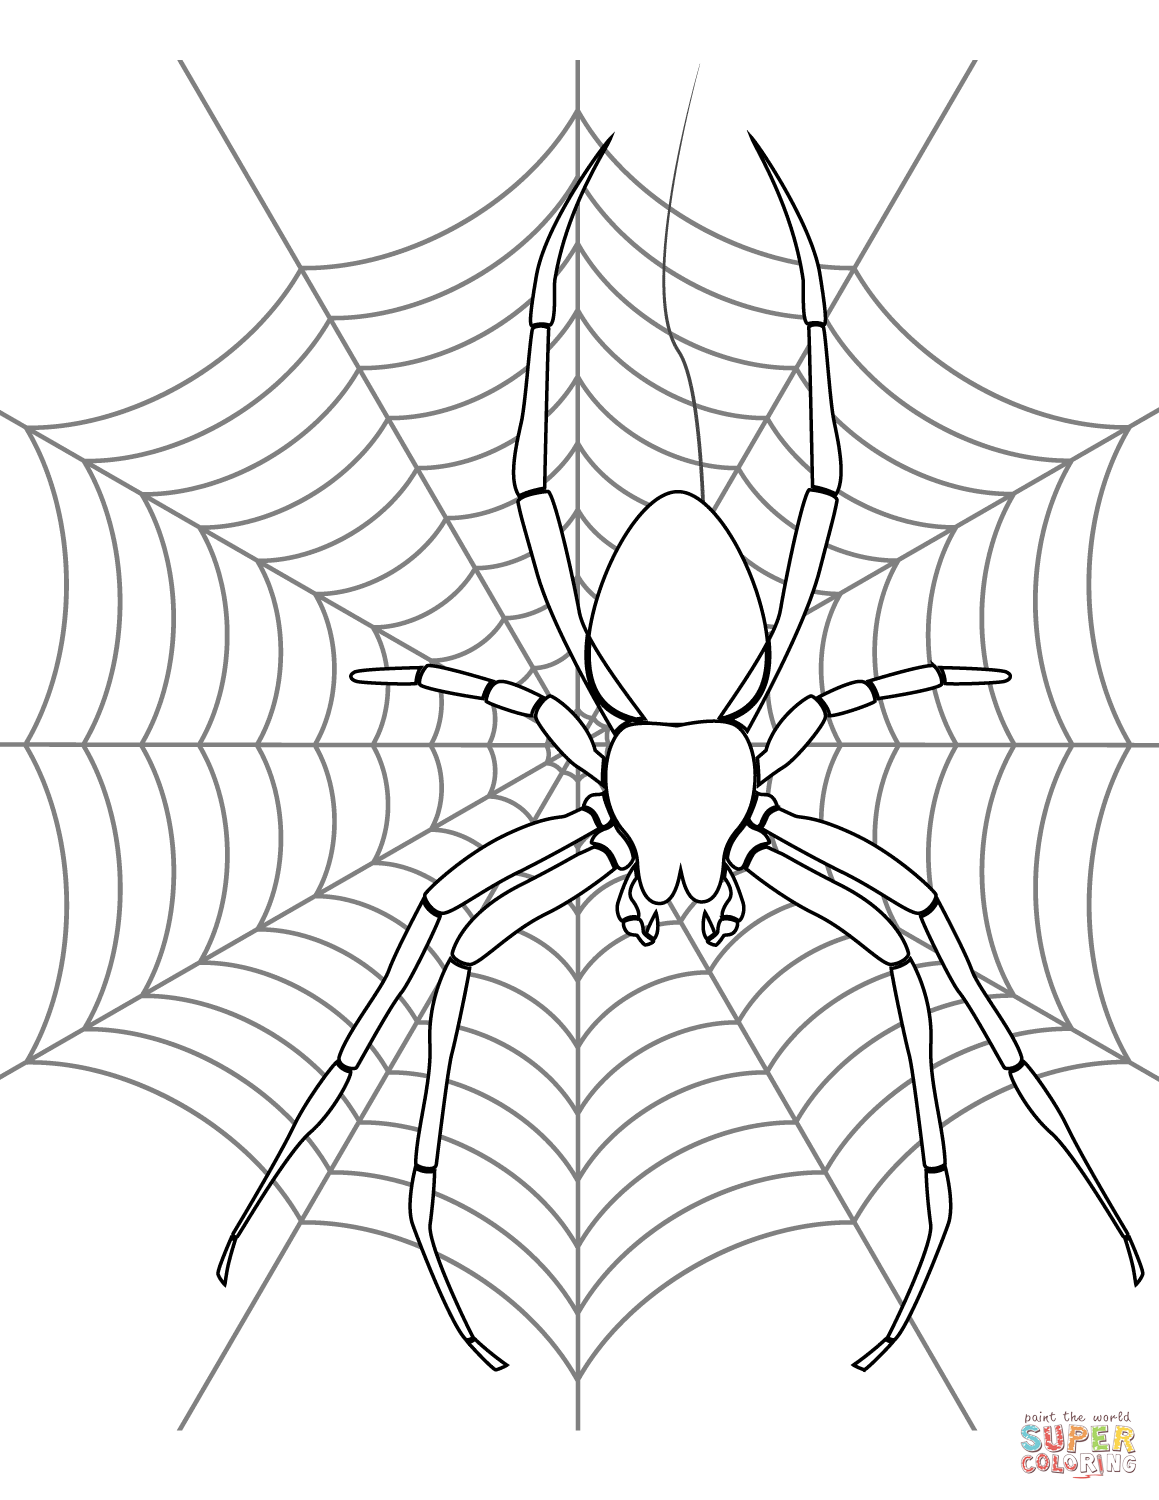 Spider On Its Web Coloring Page Free Printable Coloring Pages